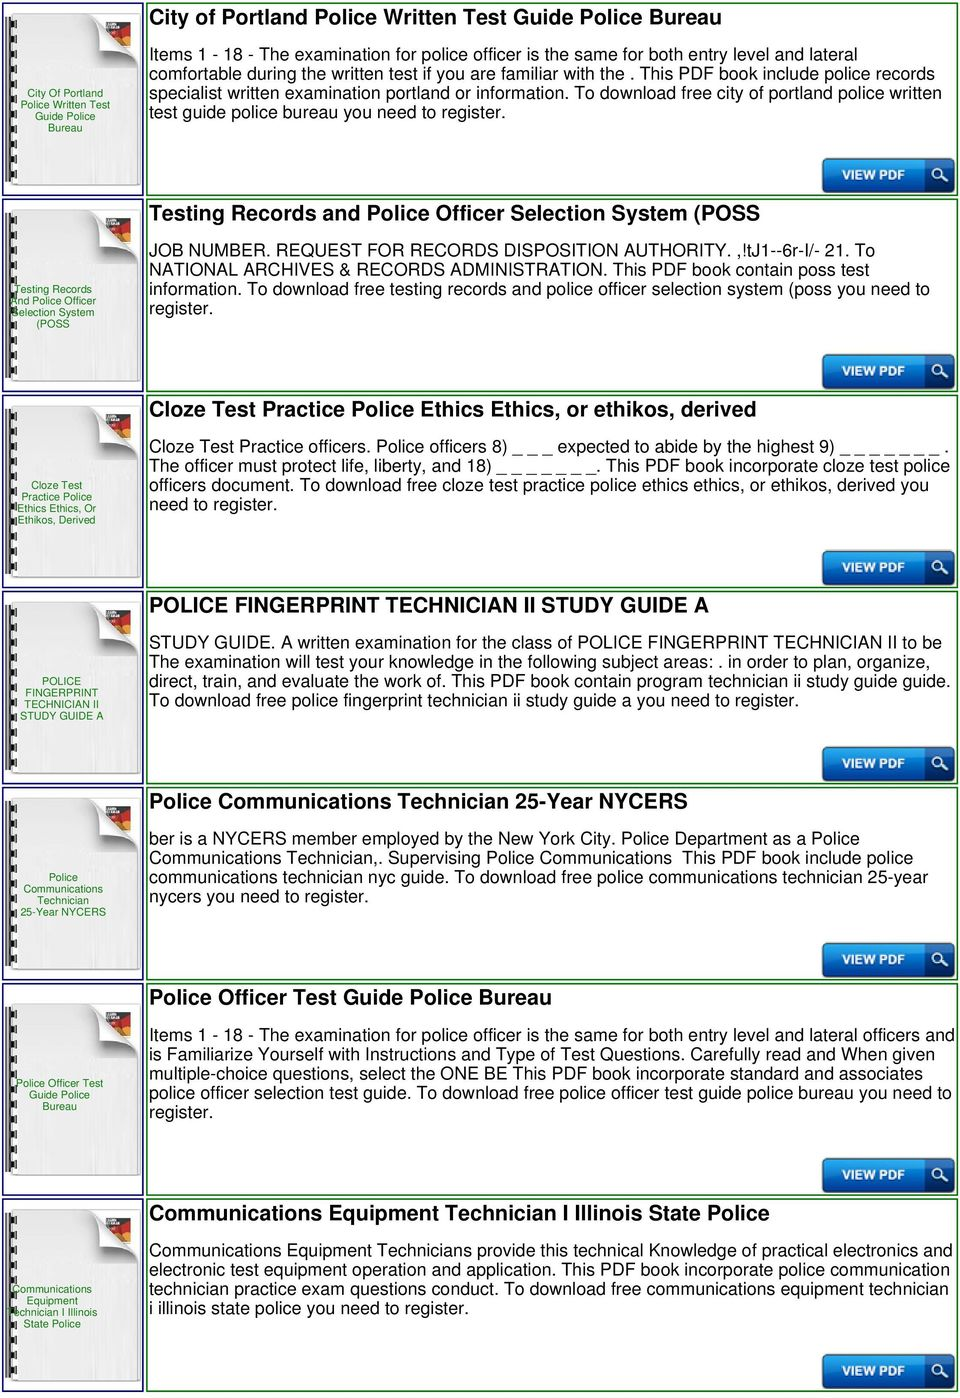 To download free city of portland police written test guide police bureau  you need to Testing